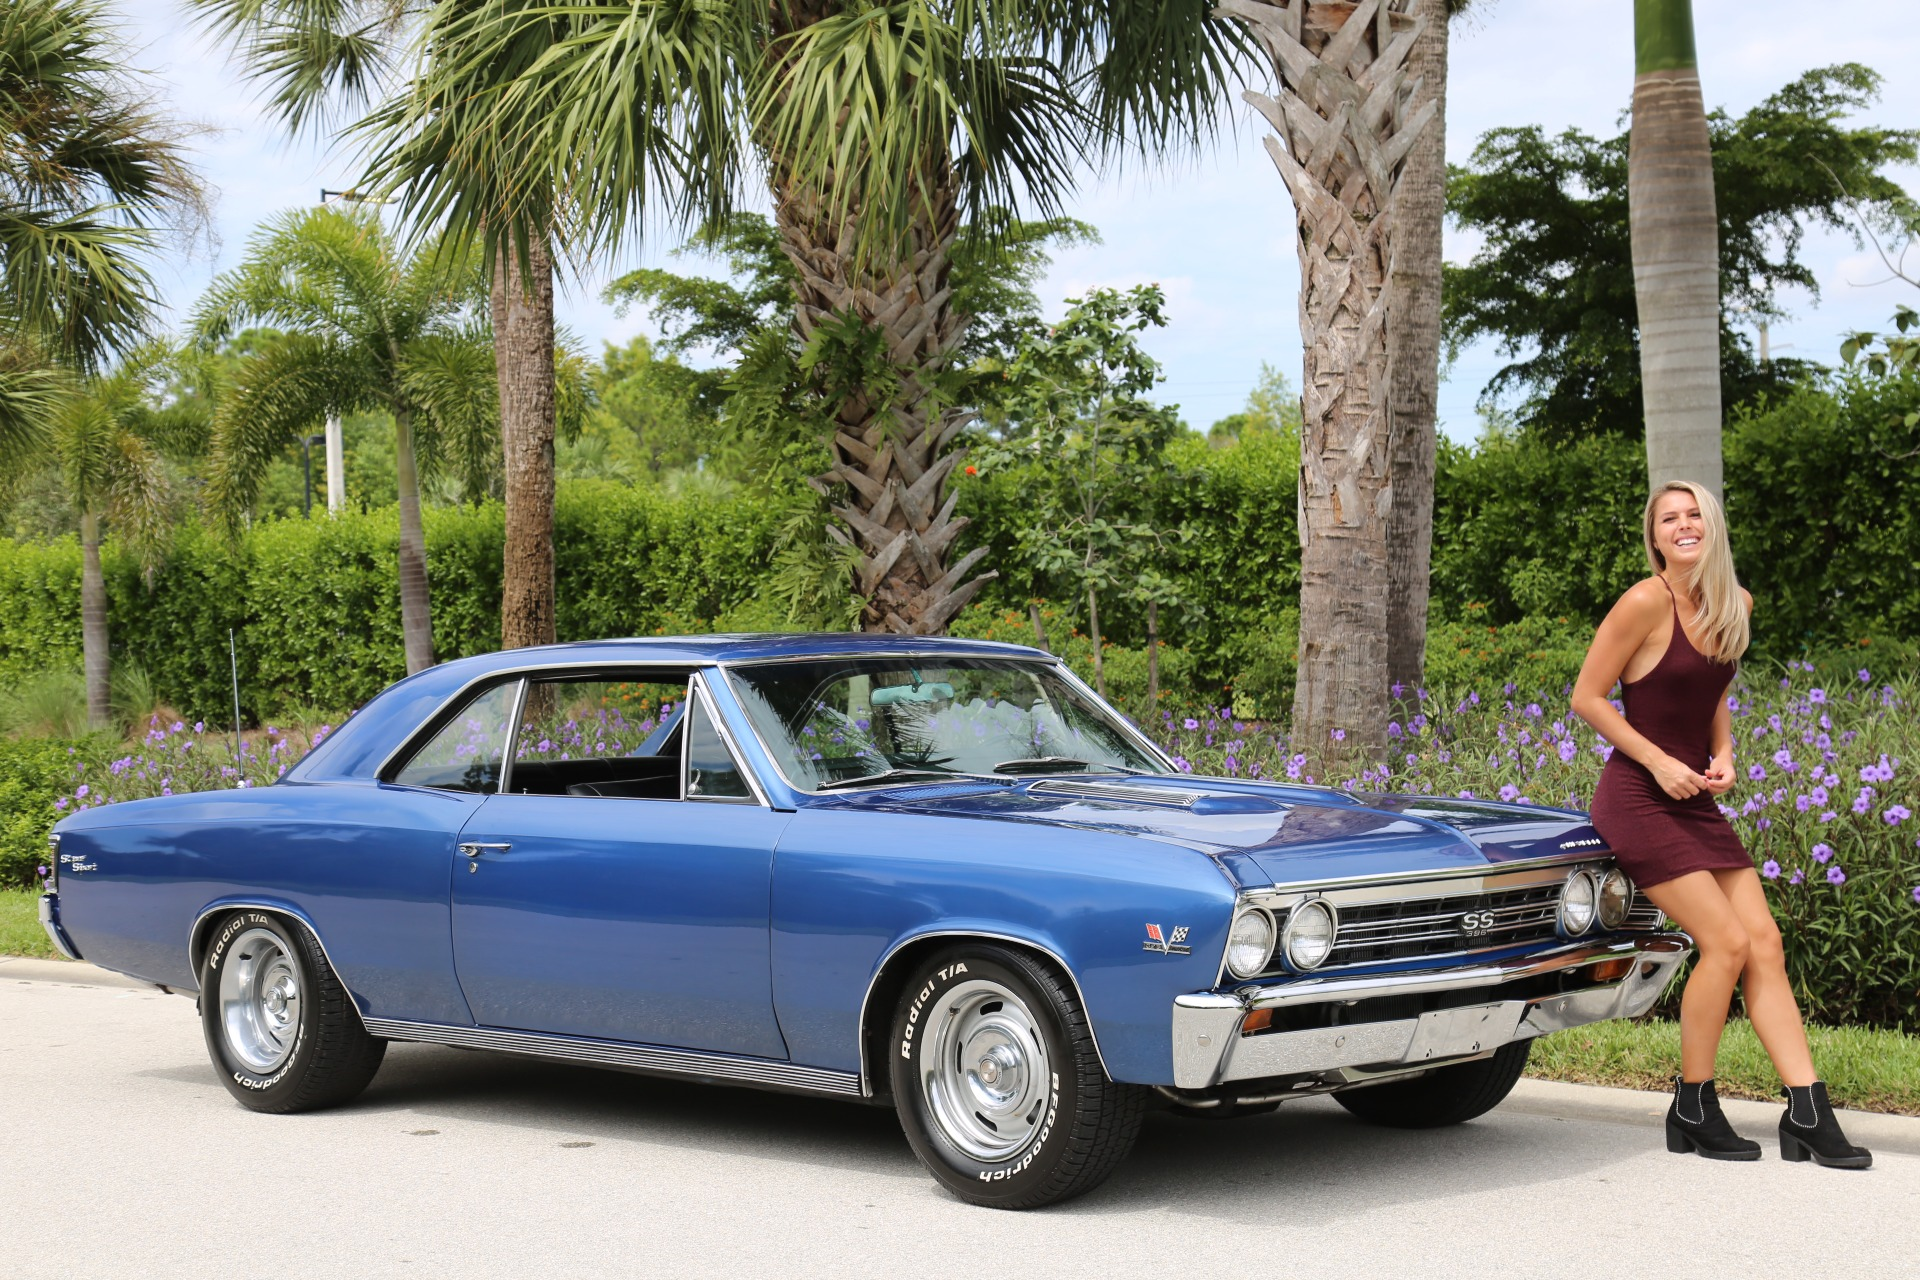 Used 1967 Chevrolet Chevelle SS Super Sport 396 for sale $47,000 at Muscle Cars for Sale Inc. in Fort Myers FL 33912 1